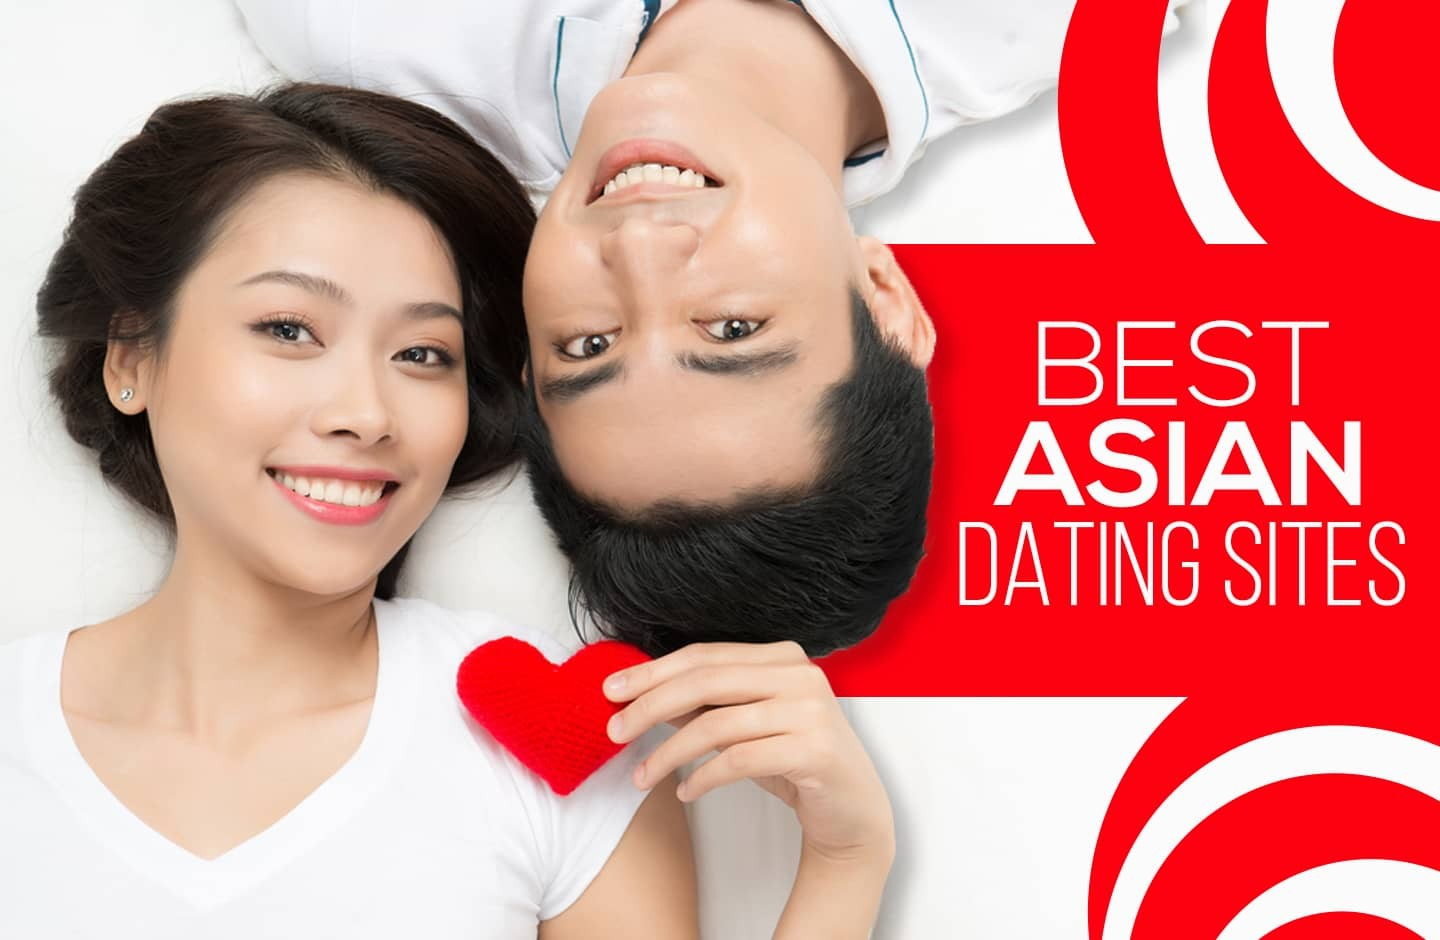 8 Best Asian Dating Sites: Meet Asian People In Your Area